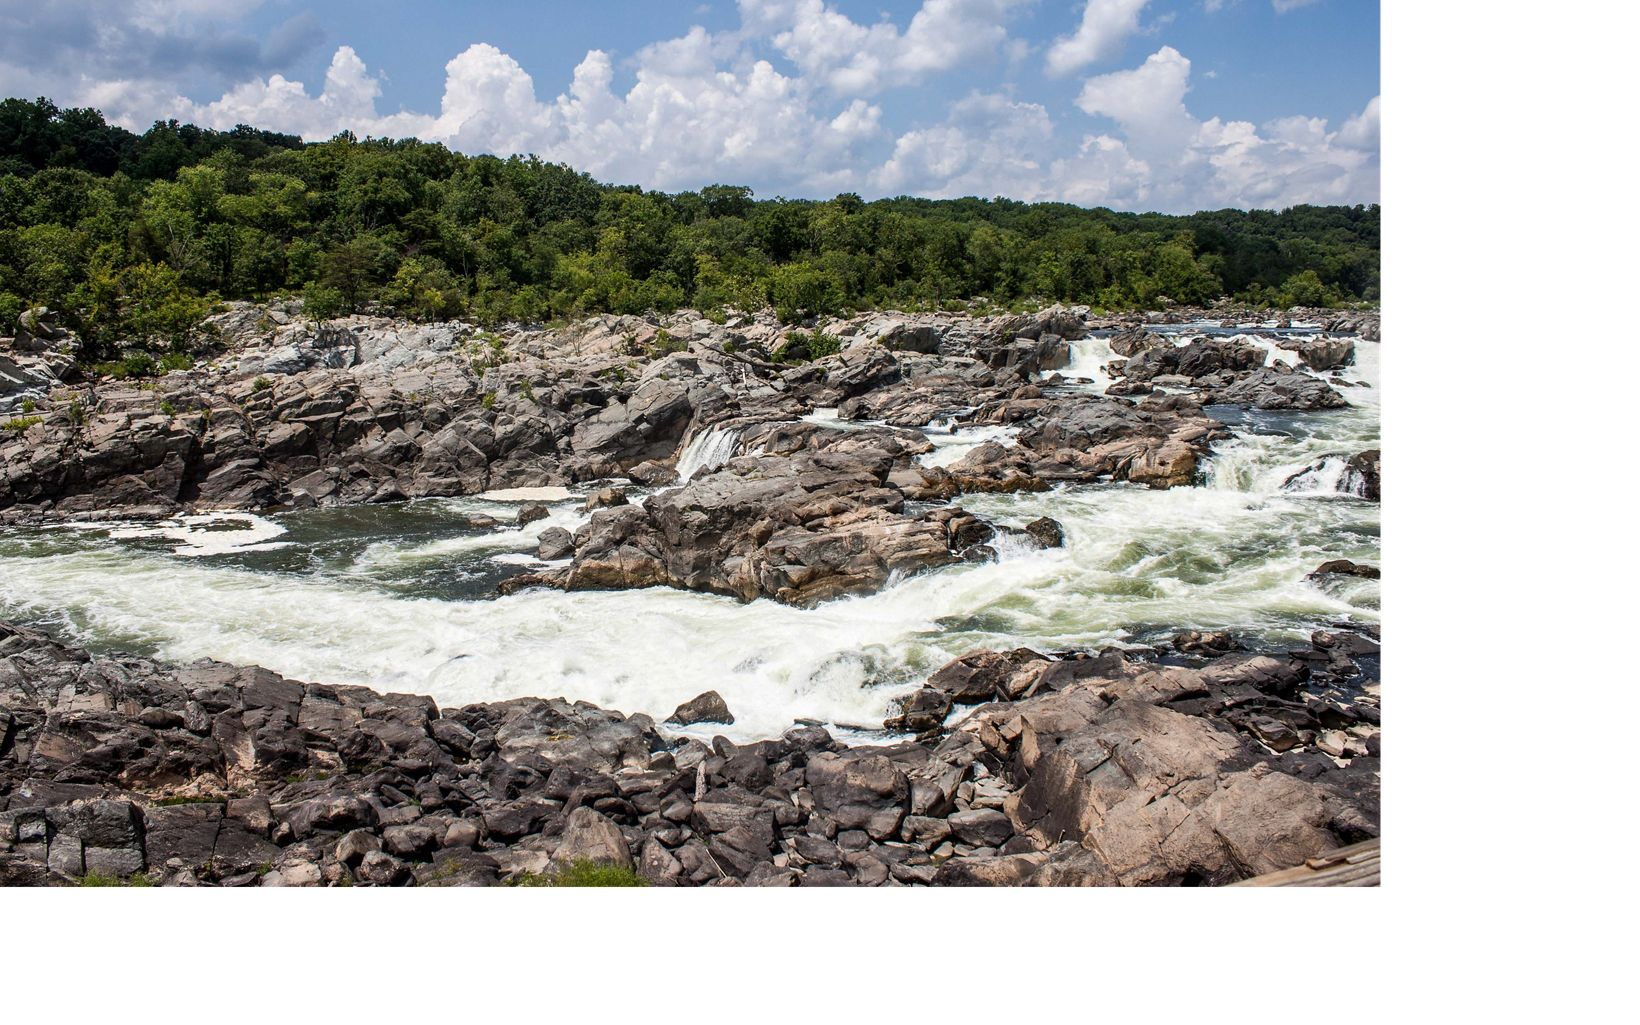 The Potomac Gorge has one of the nation's highest concentrations of globally rare natural communities.